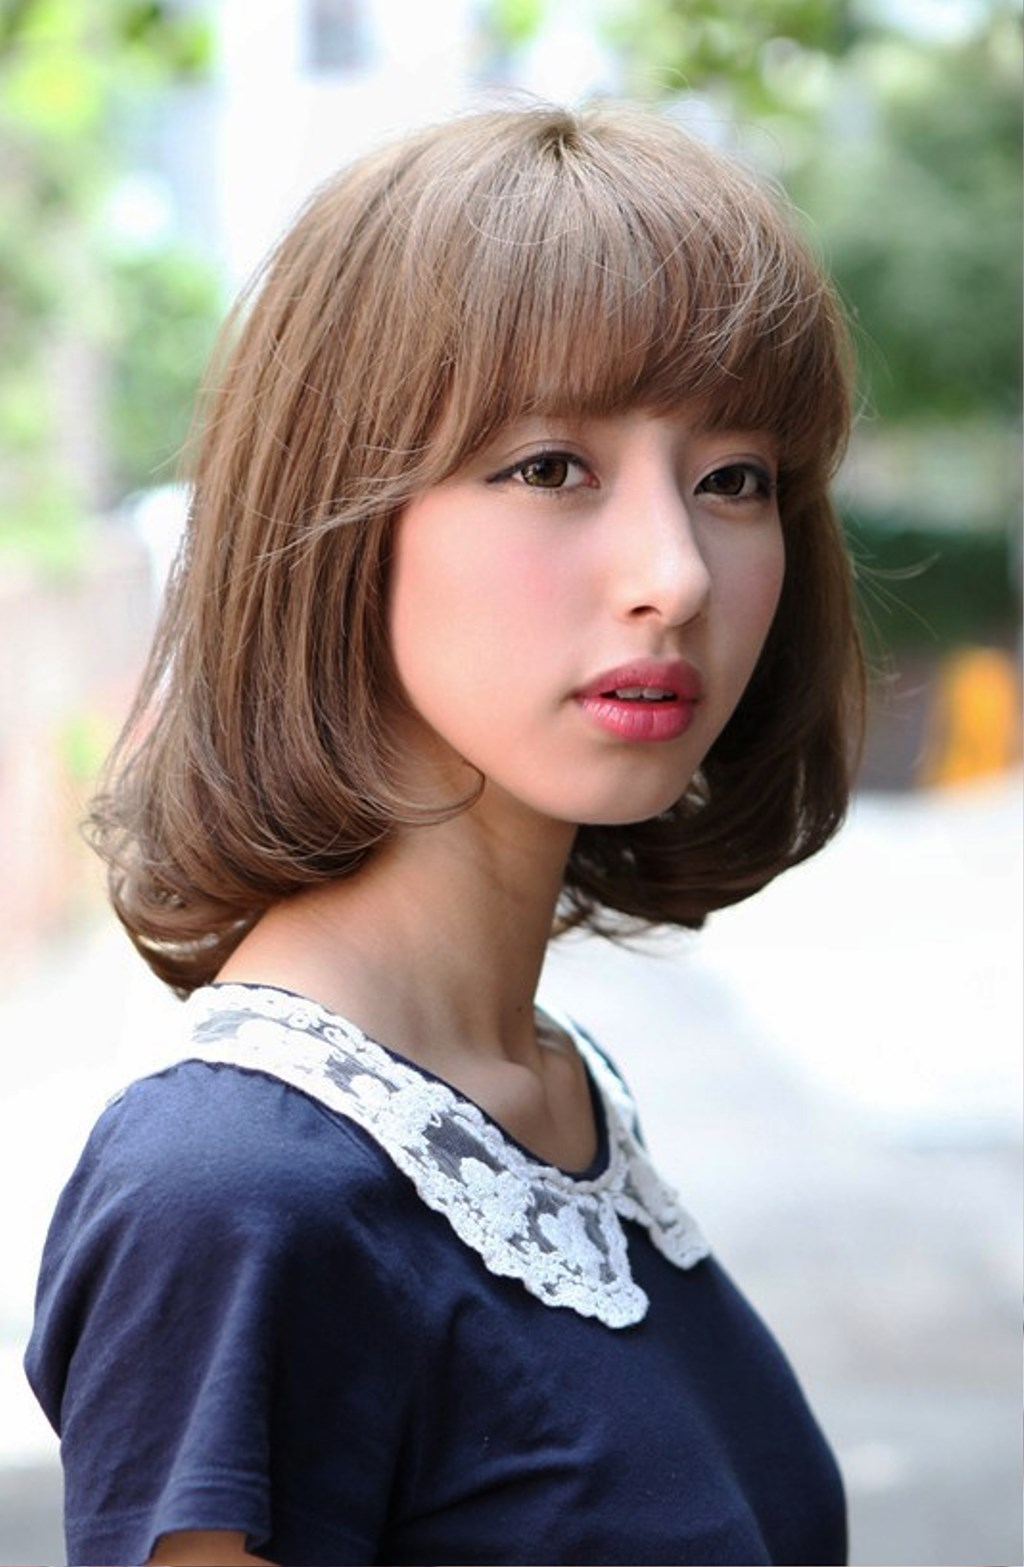 Pictures Of Cute Japanese Bob Hairstyle For Girls